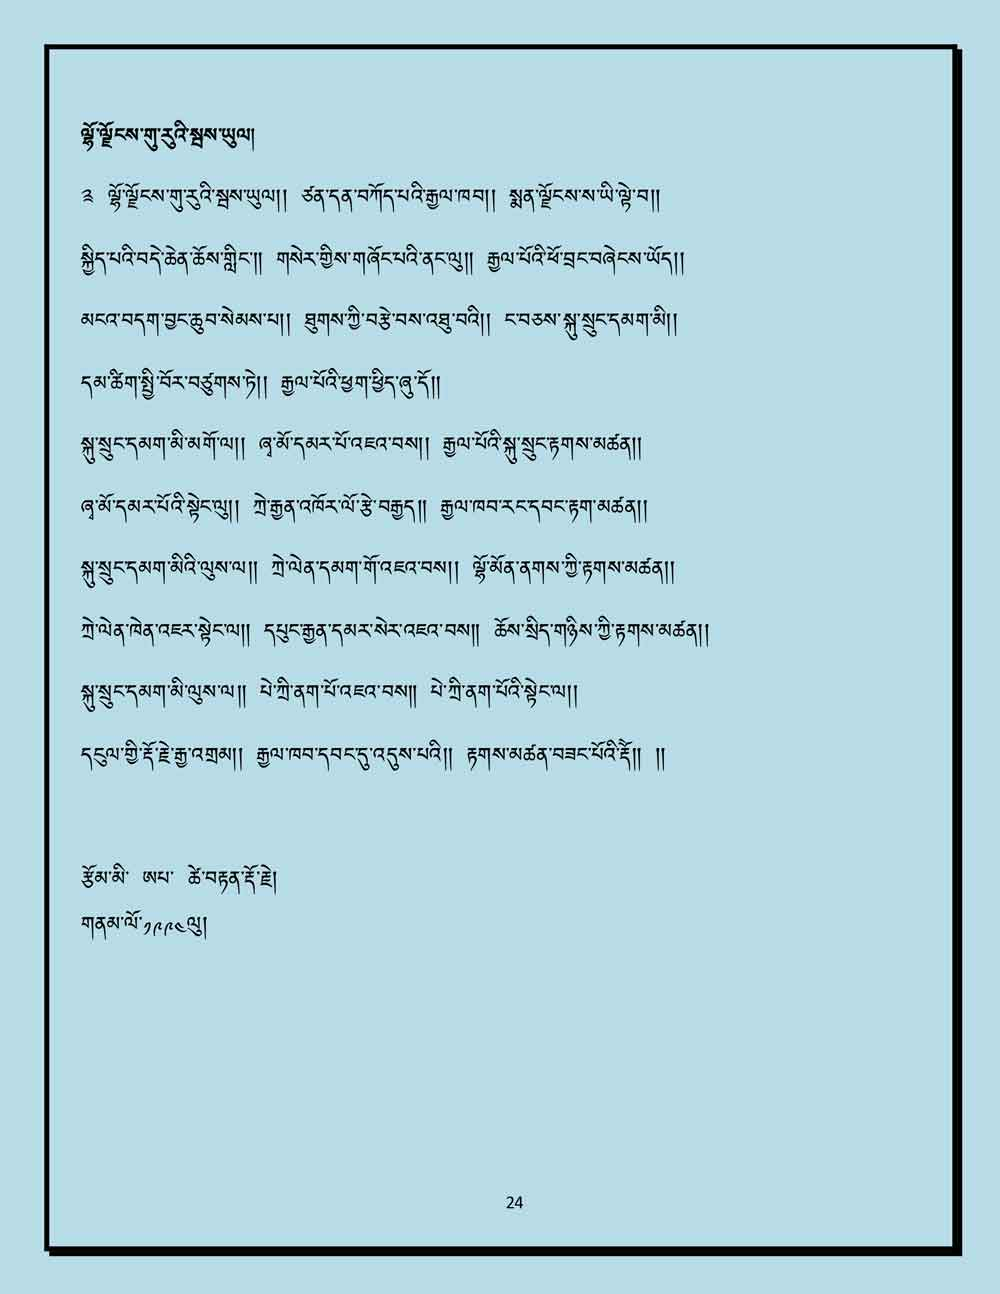 Ap-Tseten-Lyrics-24.jpg